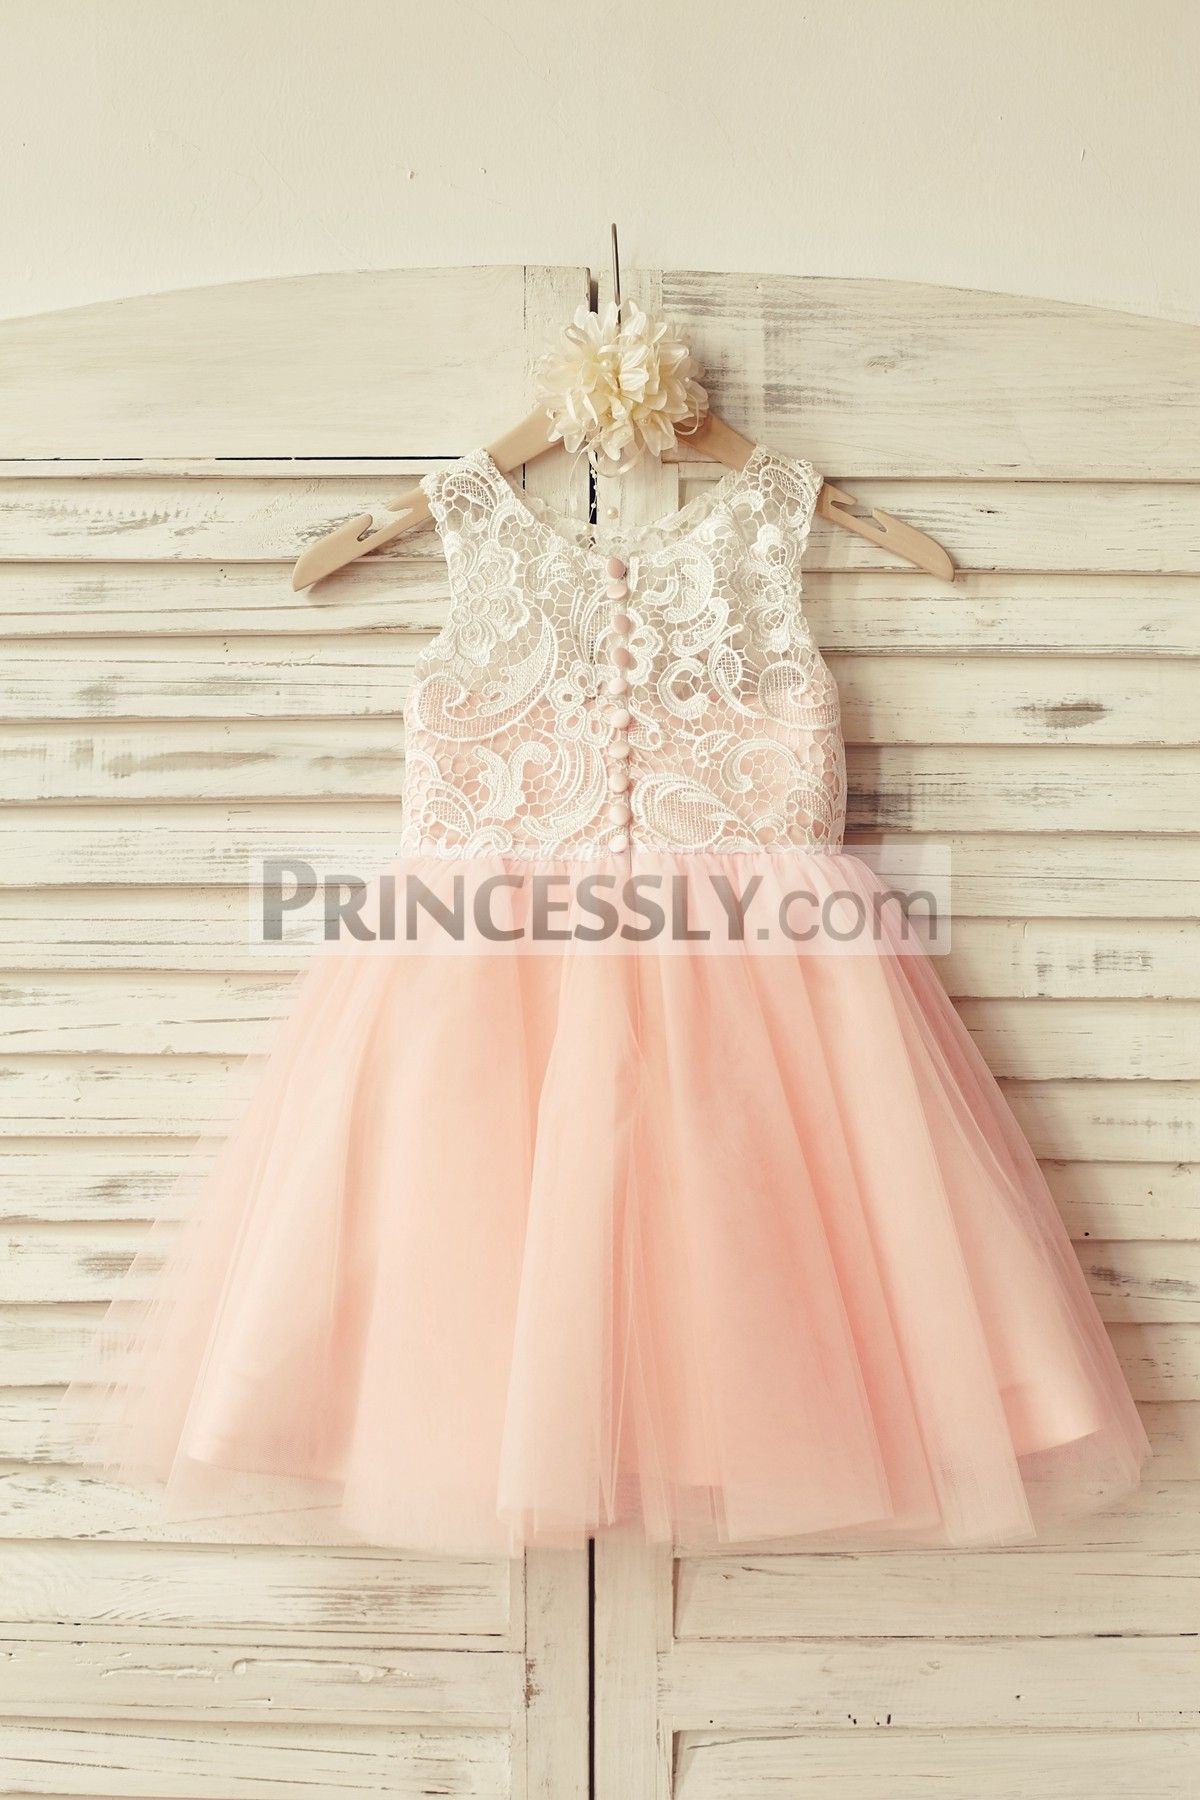 This Dress Is Made Of Ivory Lace On The Outside With Pink Princess Tulle Skirt Back Decorative Ons Now Use Nyc2018 For 9 Off